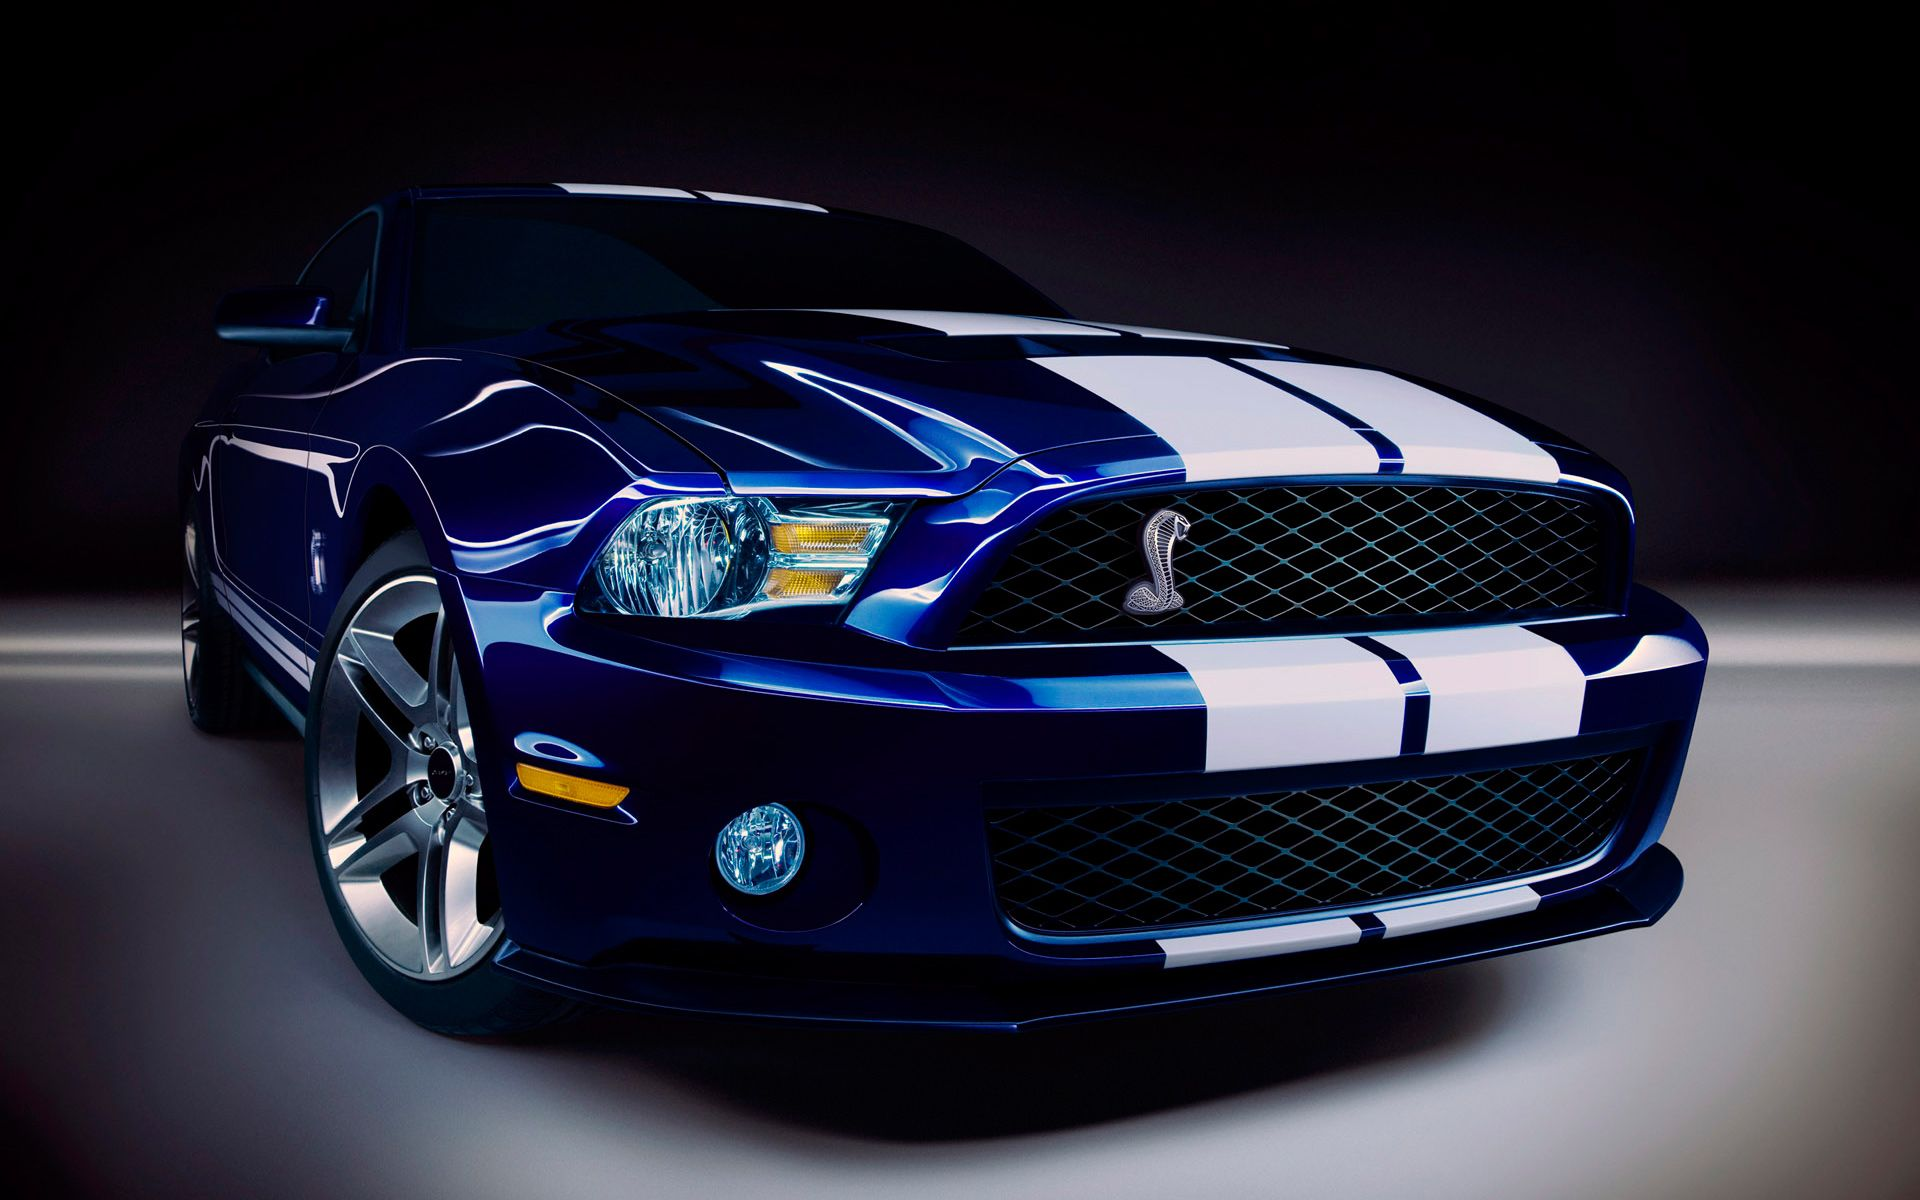 Hd wallpapers widescreen 1080p 3d ford shelby gt500 wallpapers hd wallpapers shelby mustang